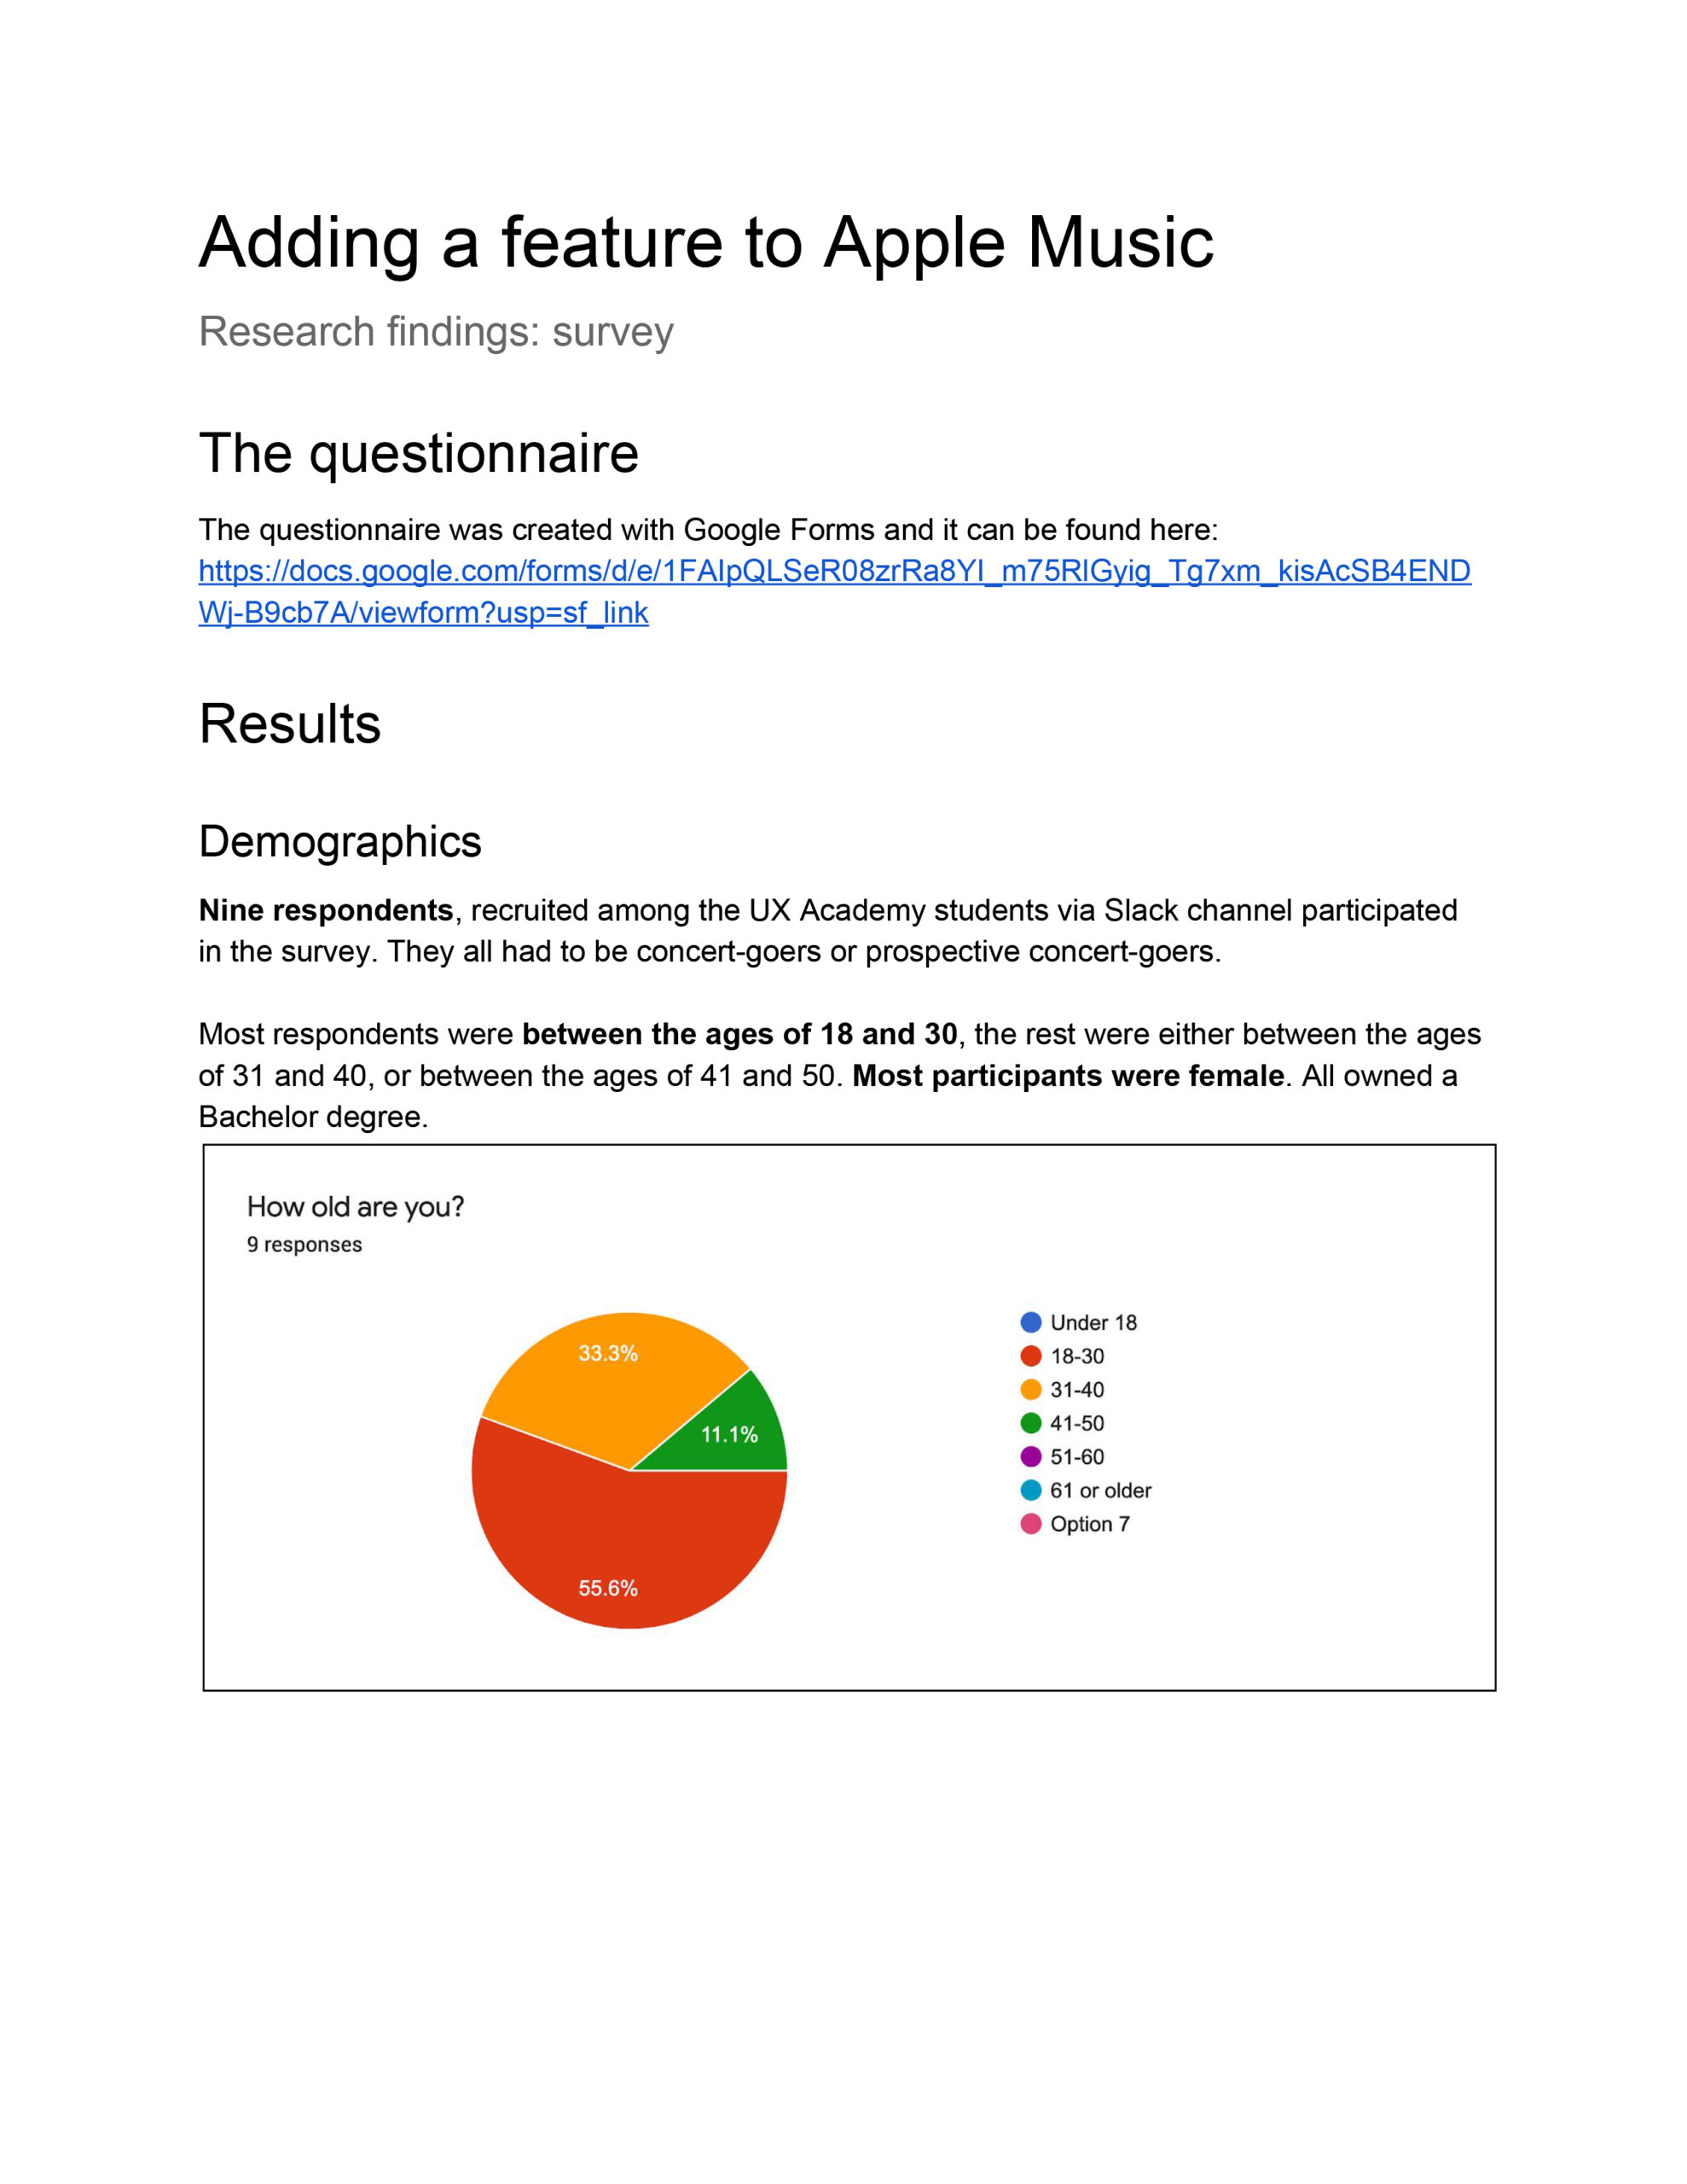 Adding-a-feature-to-Apple-Music-Survey-findings_v20200306-1